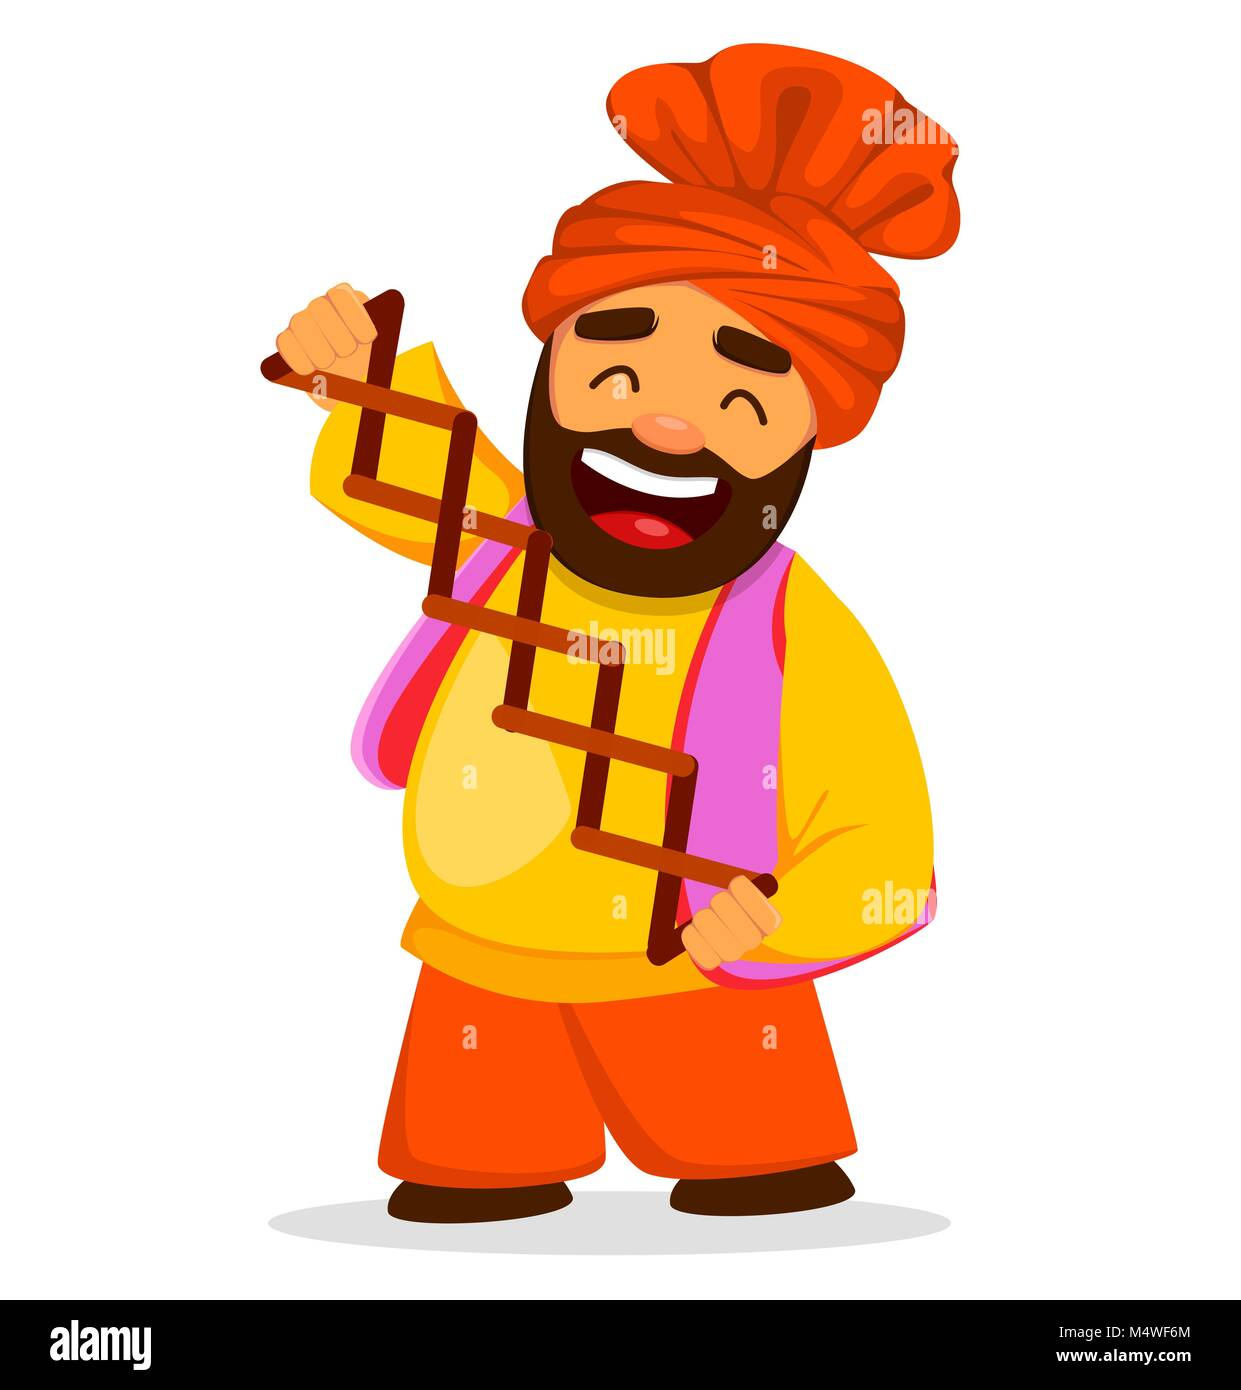 Popular winter Punjabi folk festival Lohri. Funny Sikh man, cartoon character. Vector illustration on white background - Stock Vector